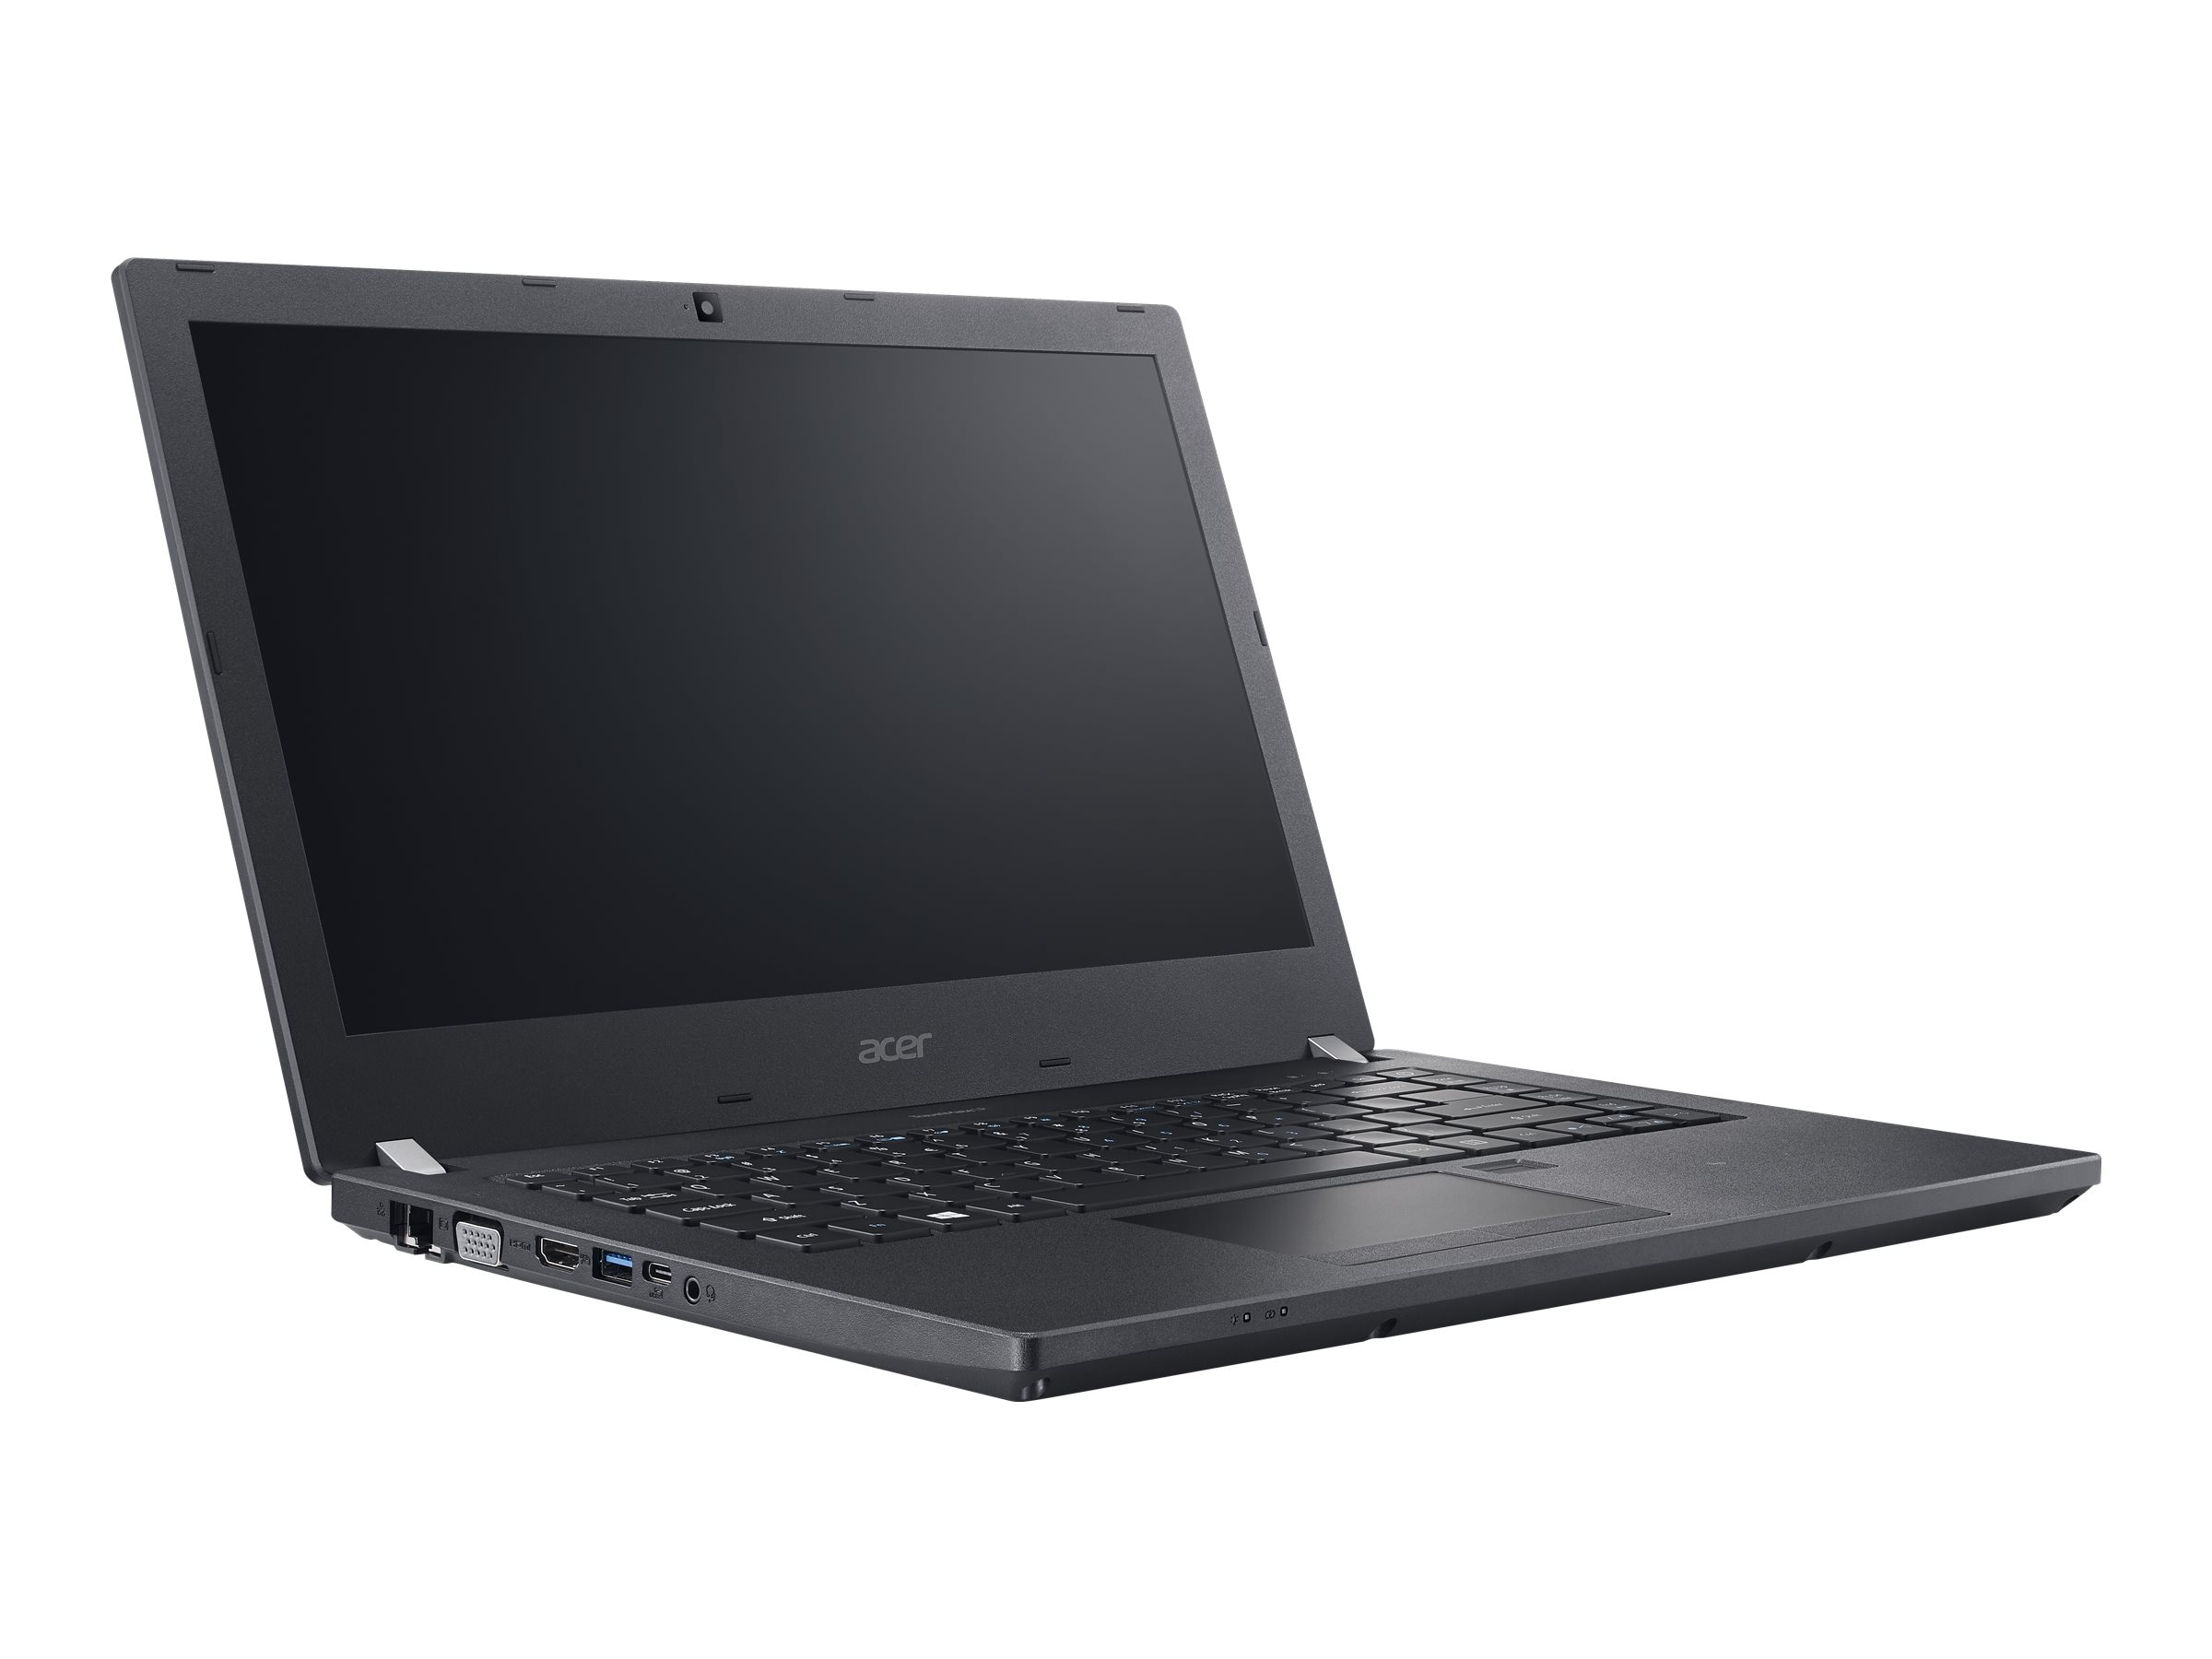 Acer NX.VDKAA.010 Image 4